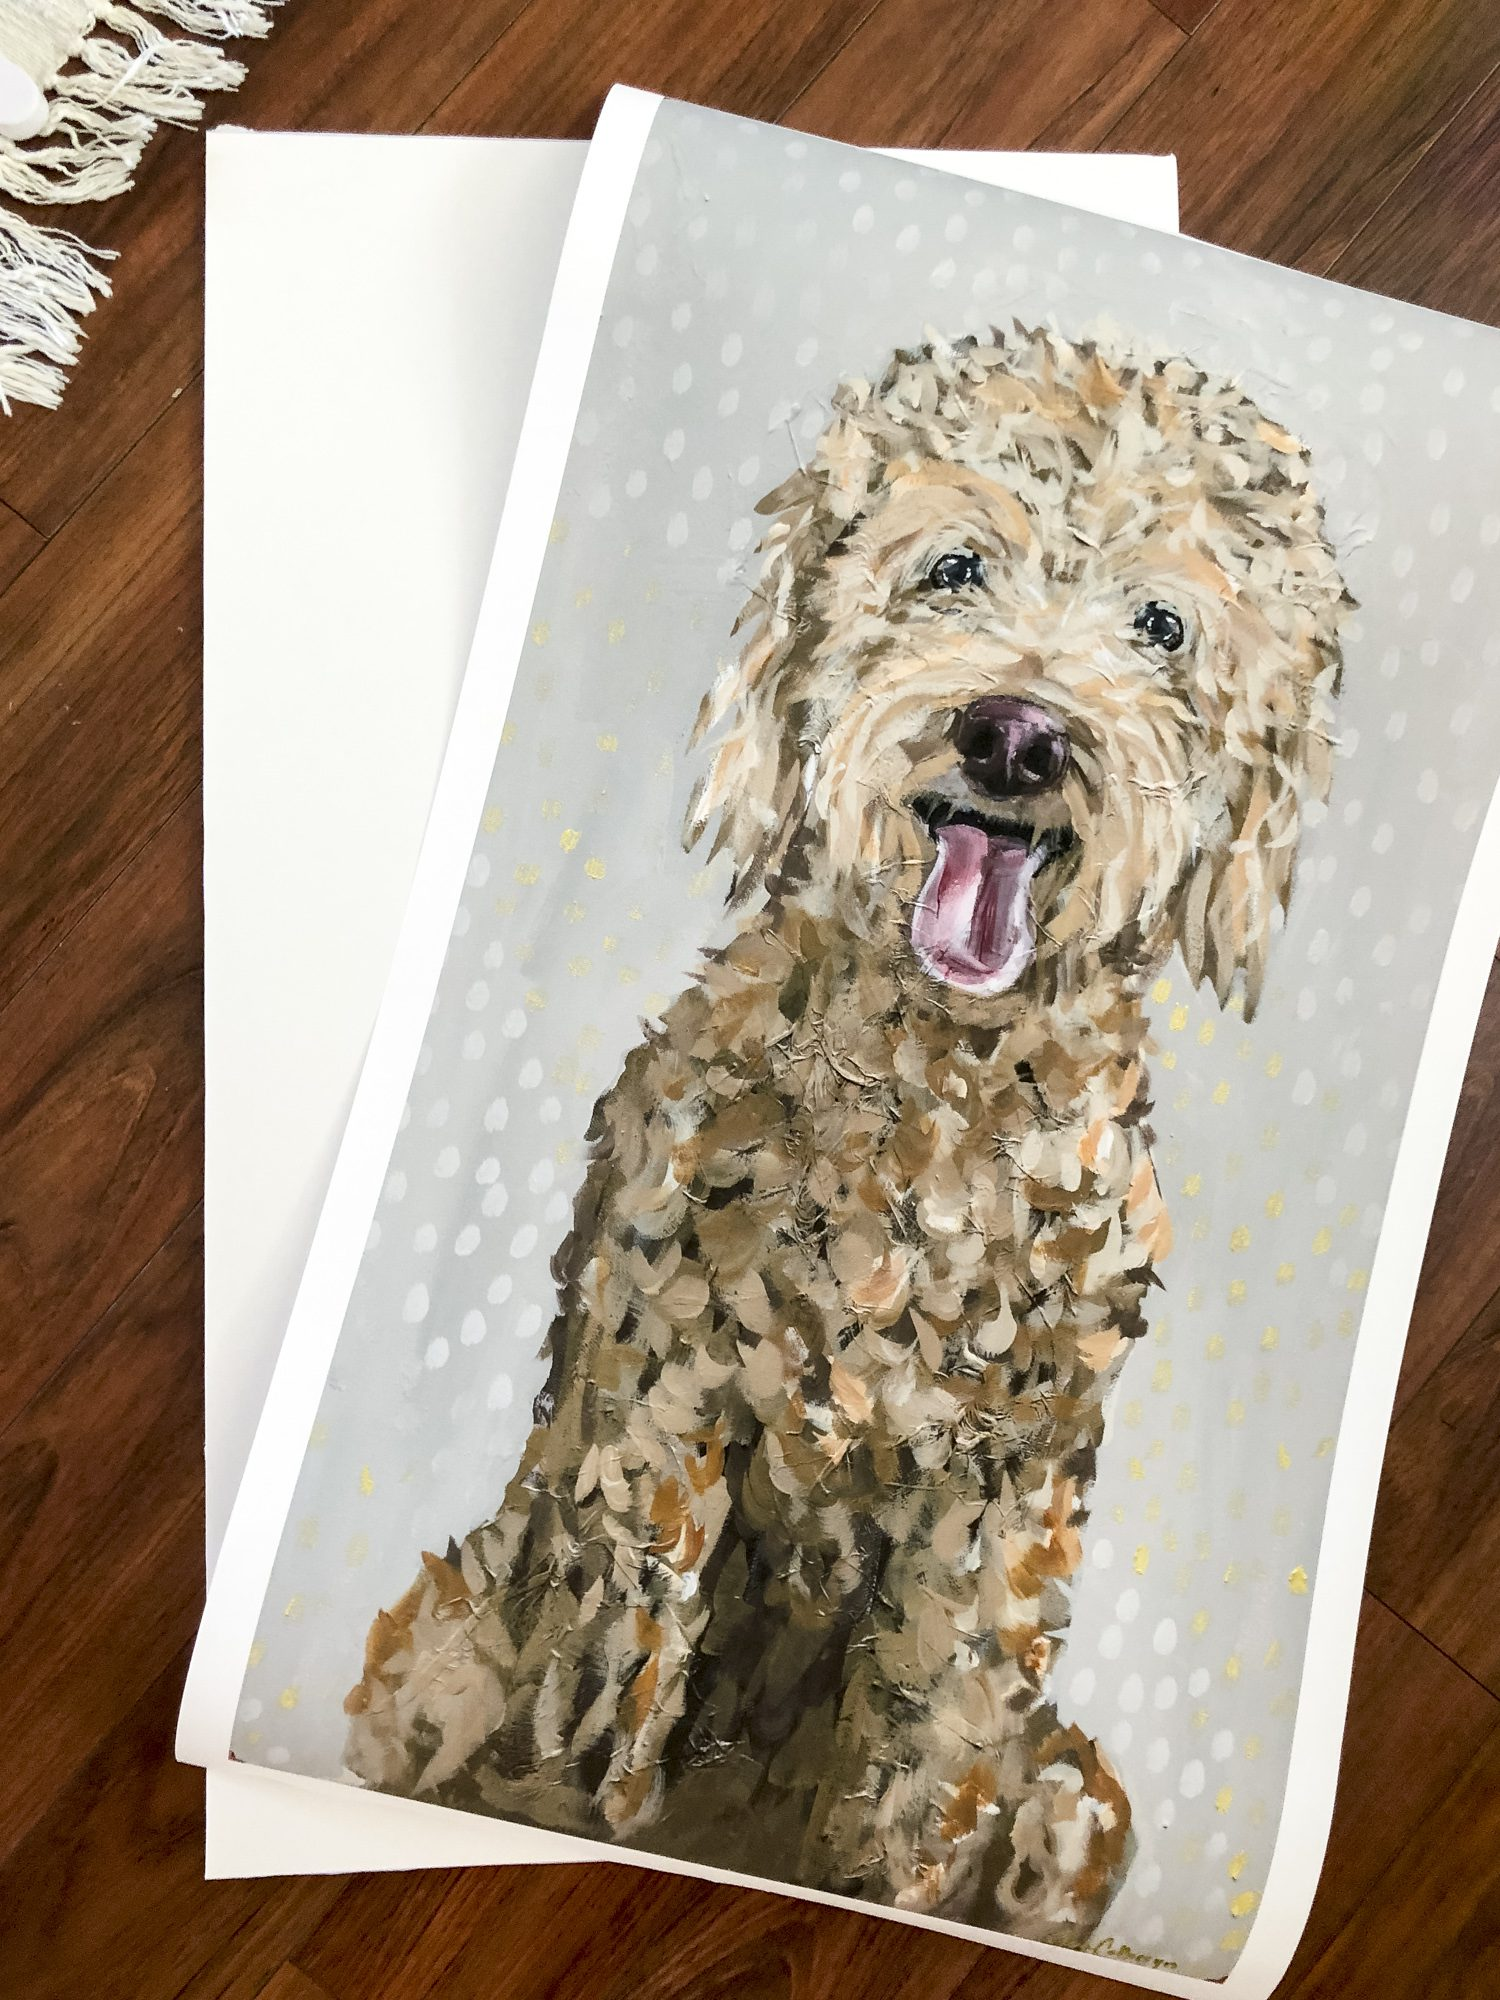 Attach your artwork to foam backing